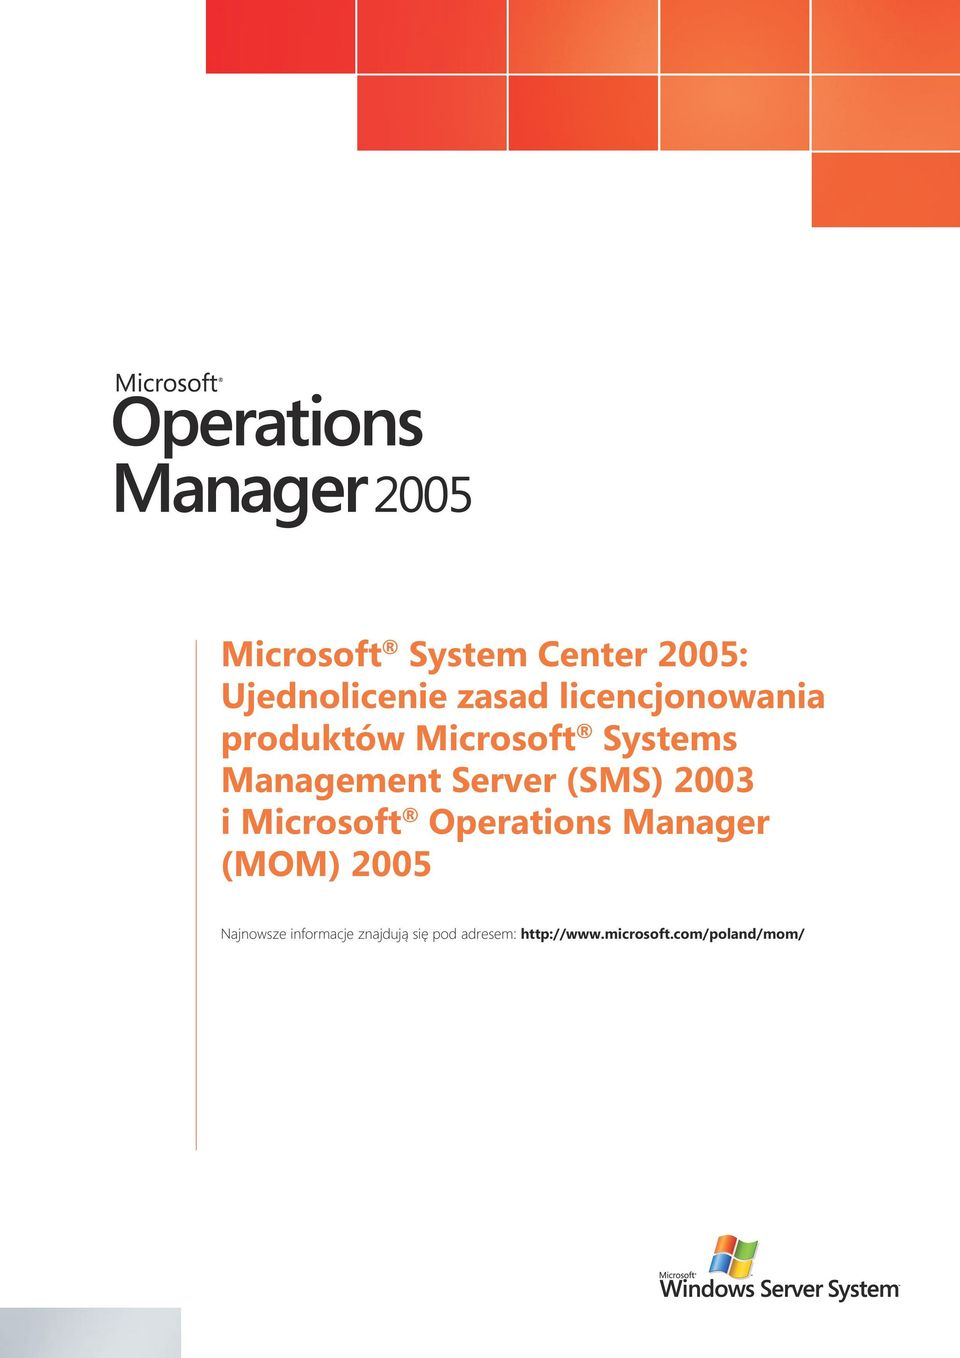 (SMS) 2003 i Microsoft perations Manager (MM) 2005 Najnowsze